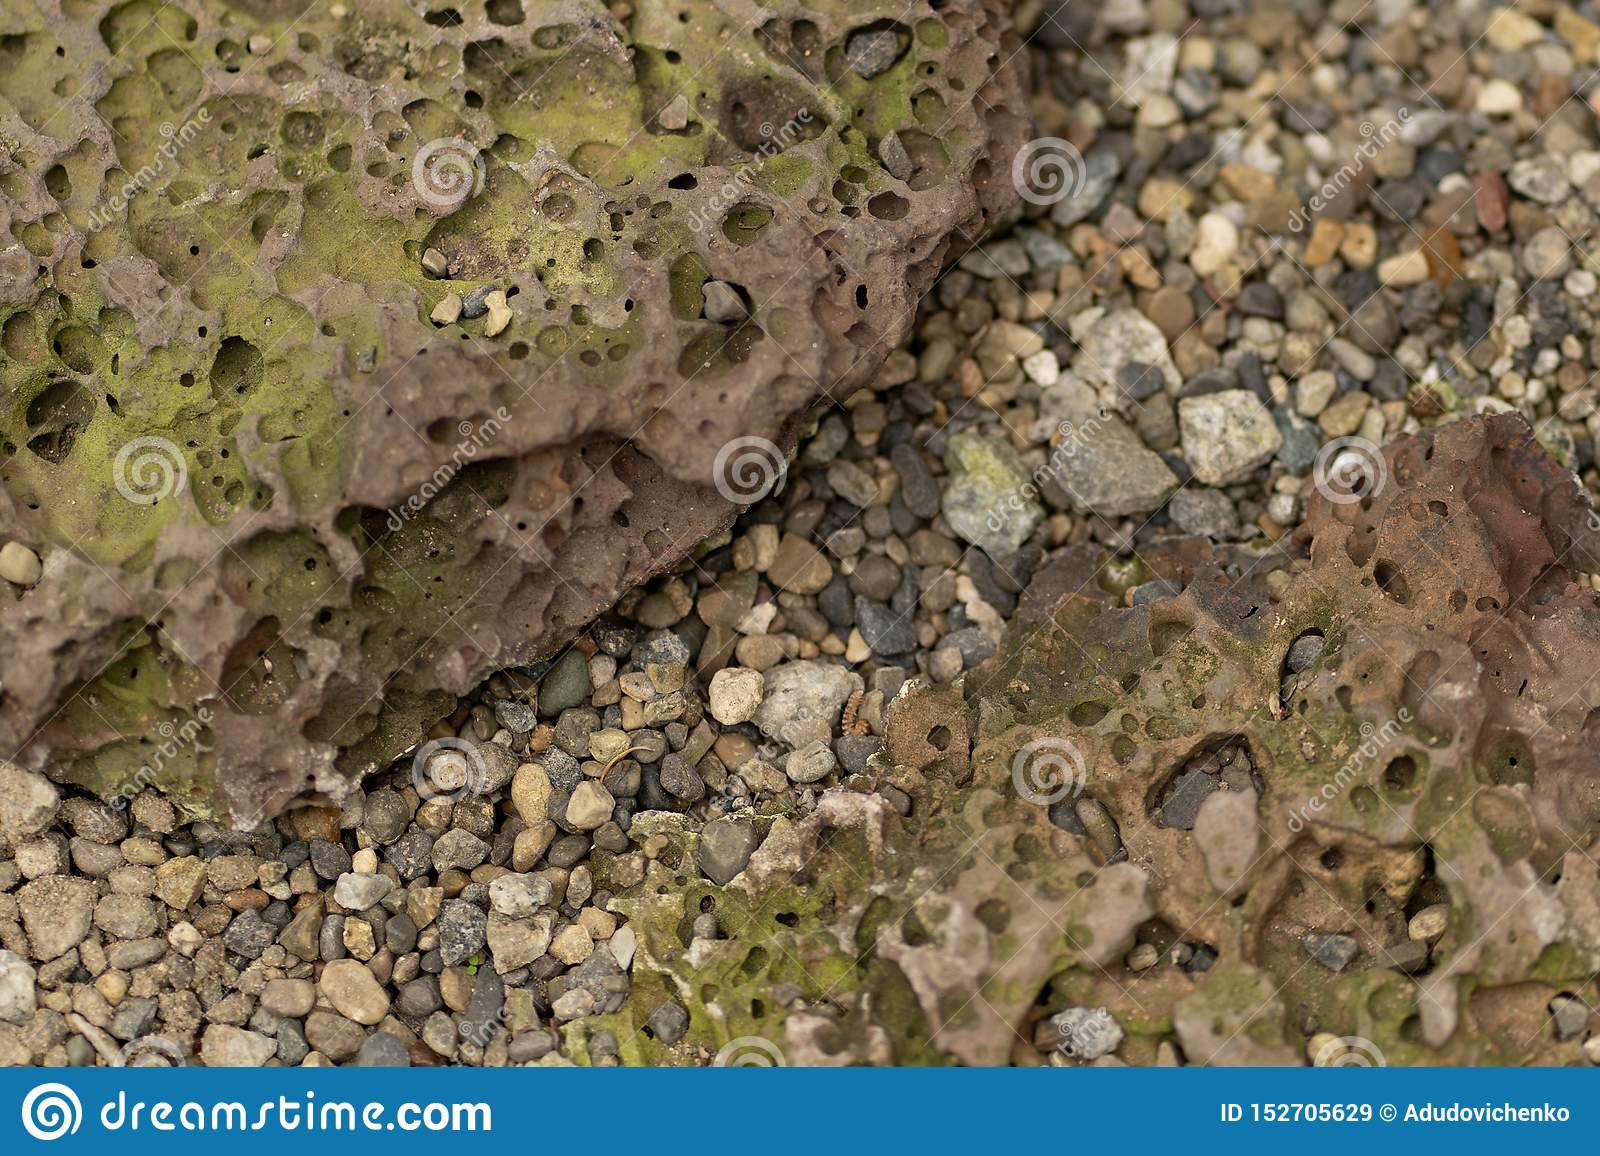 Photo texture of natural porous stone and gravel